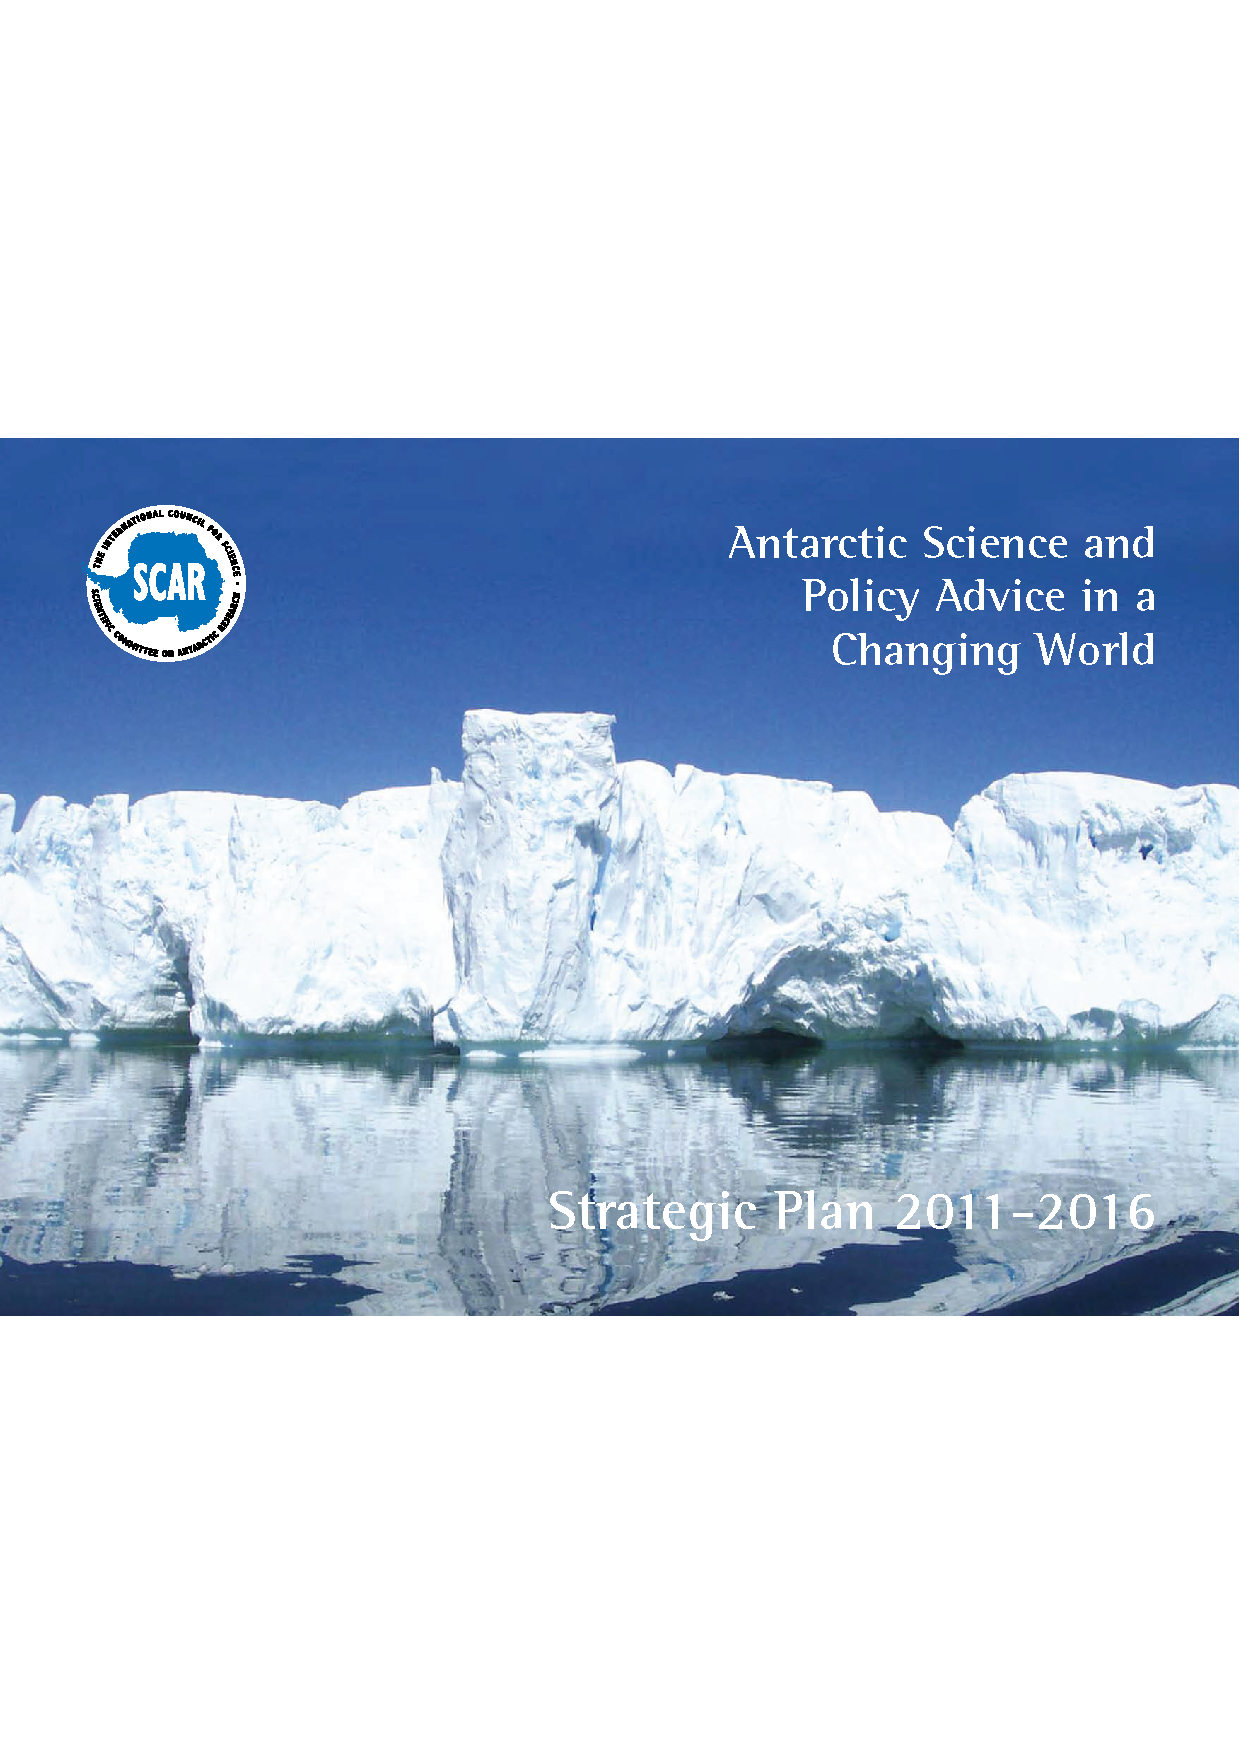 SCAR Strategic Plan 2011-2016: Antarctic Science and Policy Advice in a Changing World